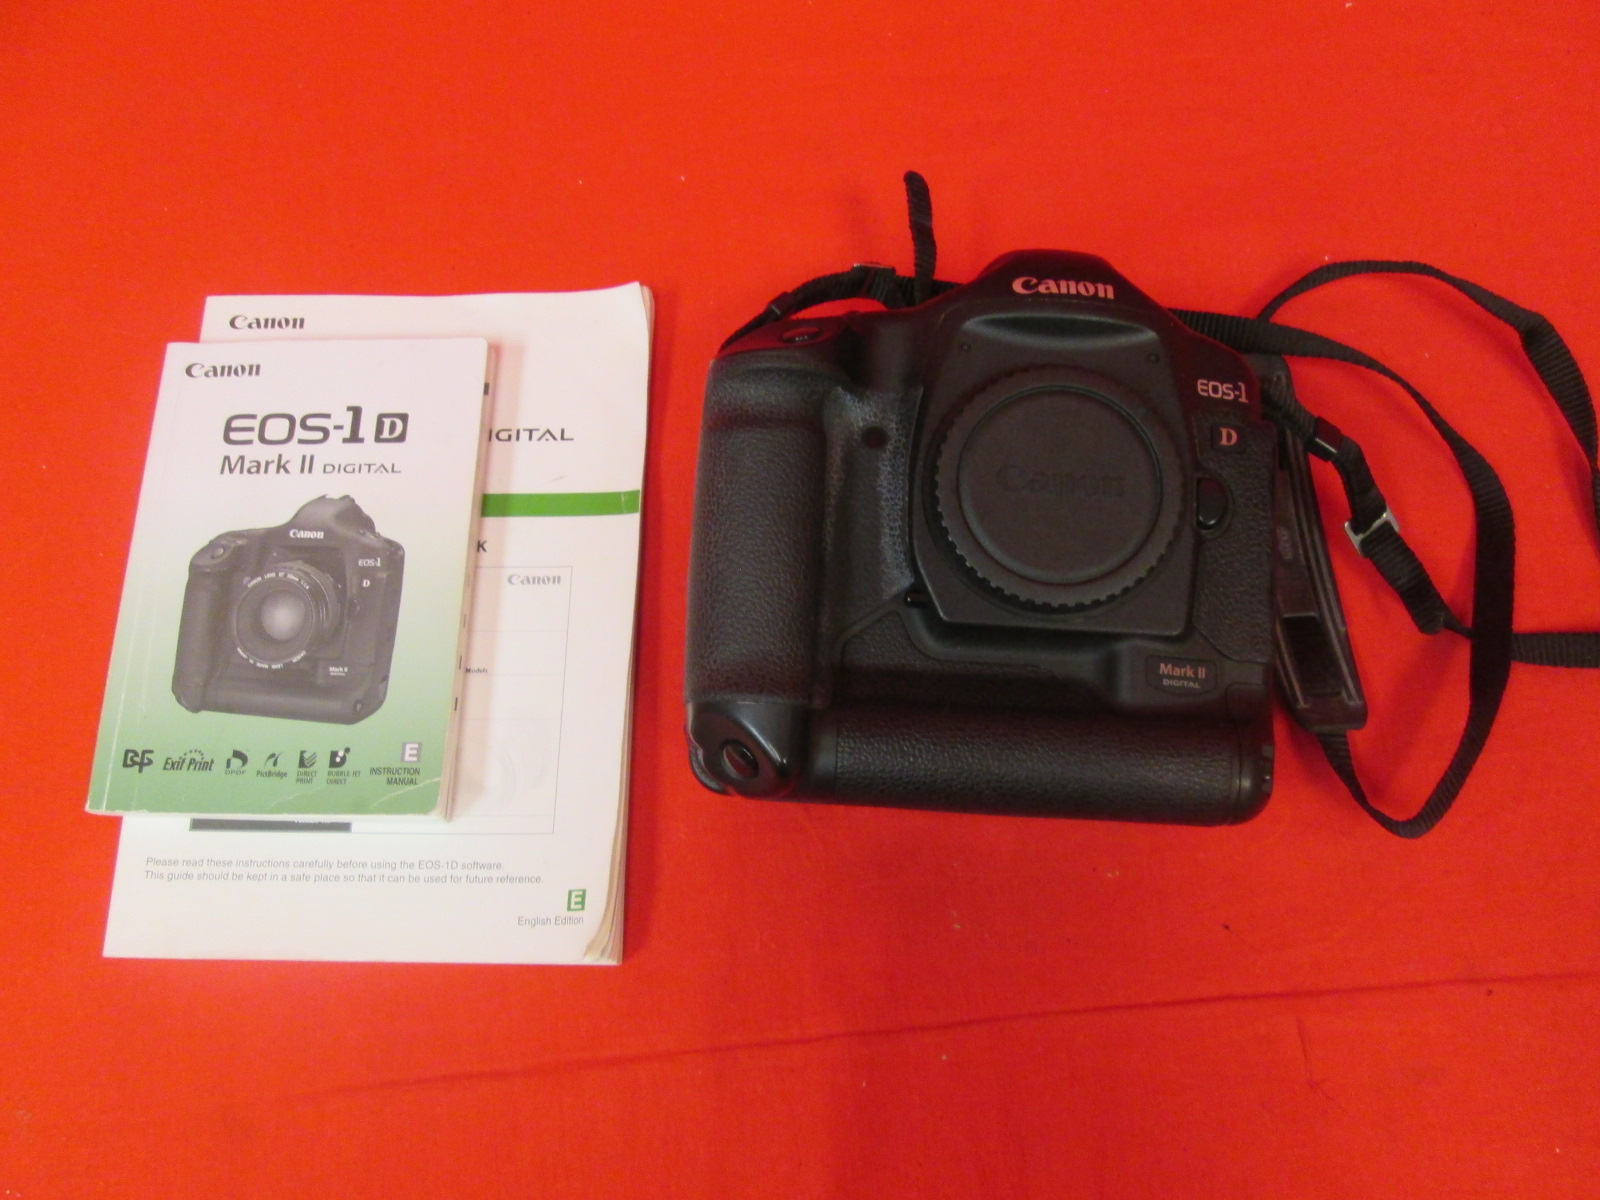 Canon EOS-1D 0931C002 8.2MP Digital SLR Camera Body Only Mark II Black